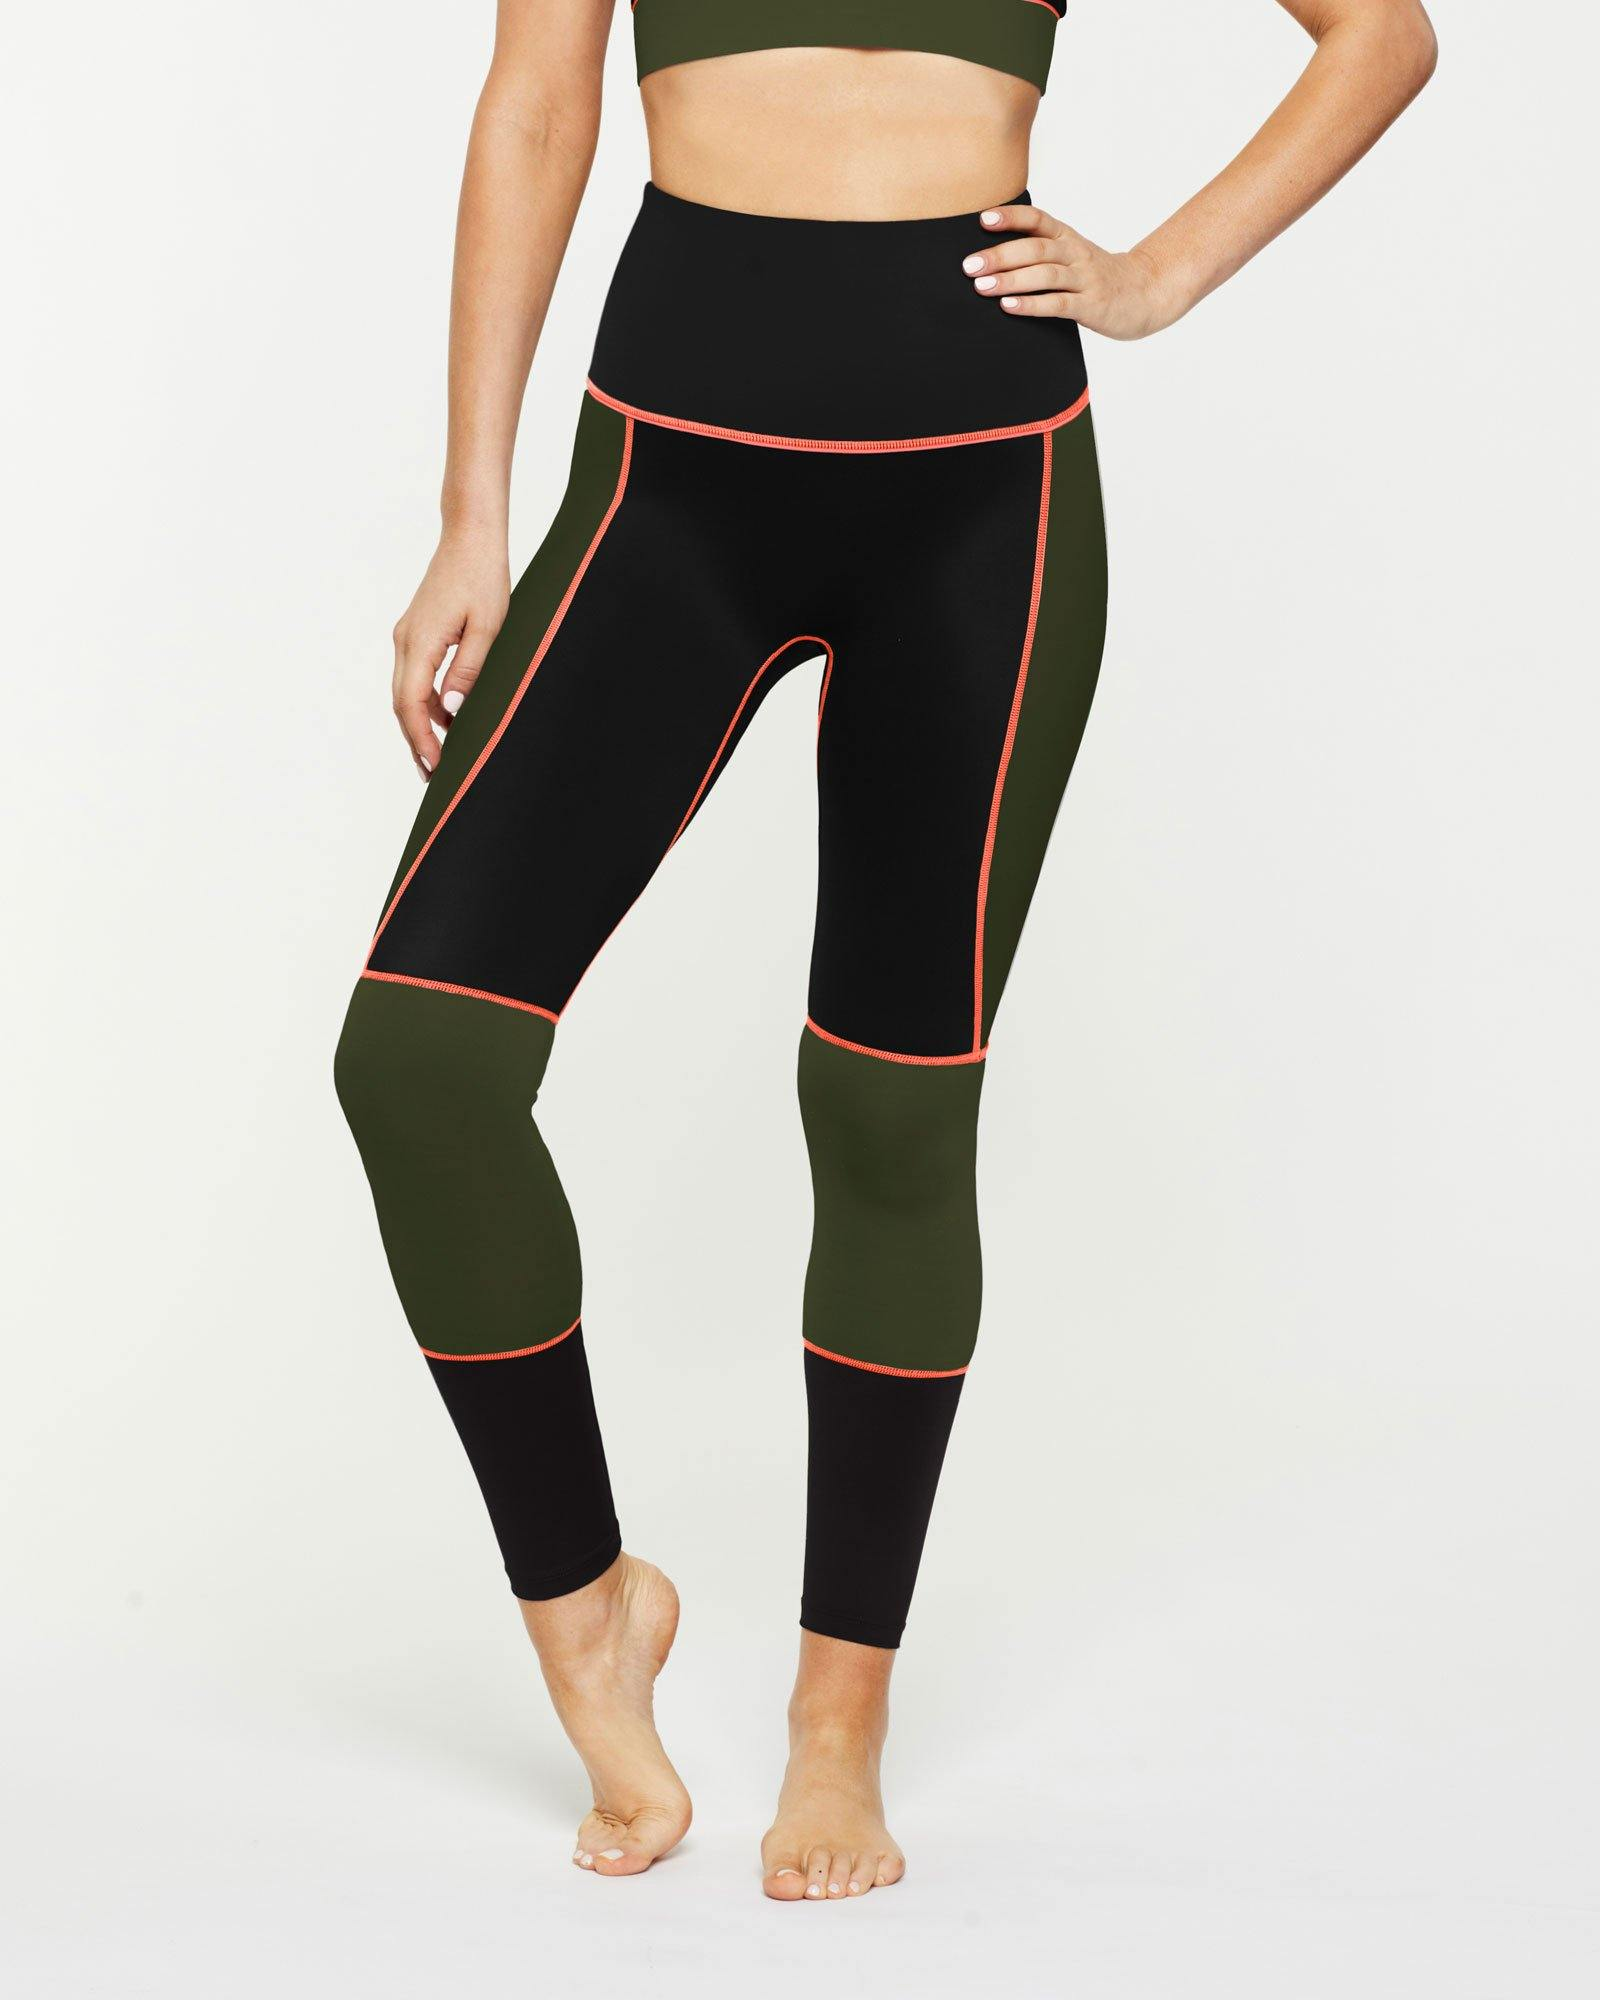 Sergeant Olive GRACILIS 7/8 HIGH WAISTED LEGGING Black WITH CONTRAST PANELS in dark Olive and contrast orange stitching, front VIEW for pilates, barre, yoga, dance, gym-workouts